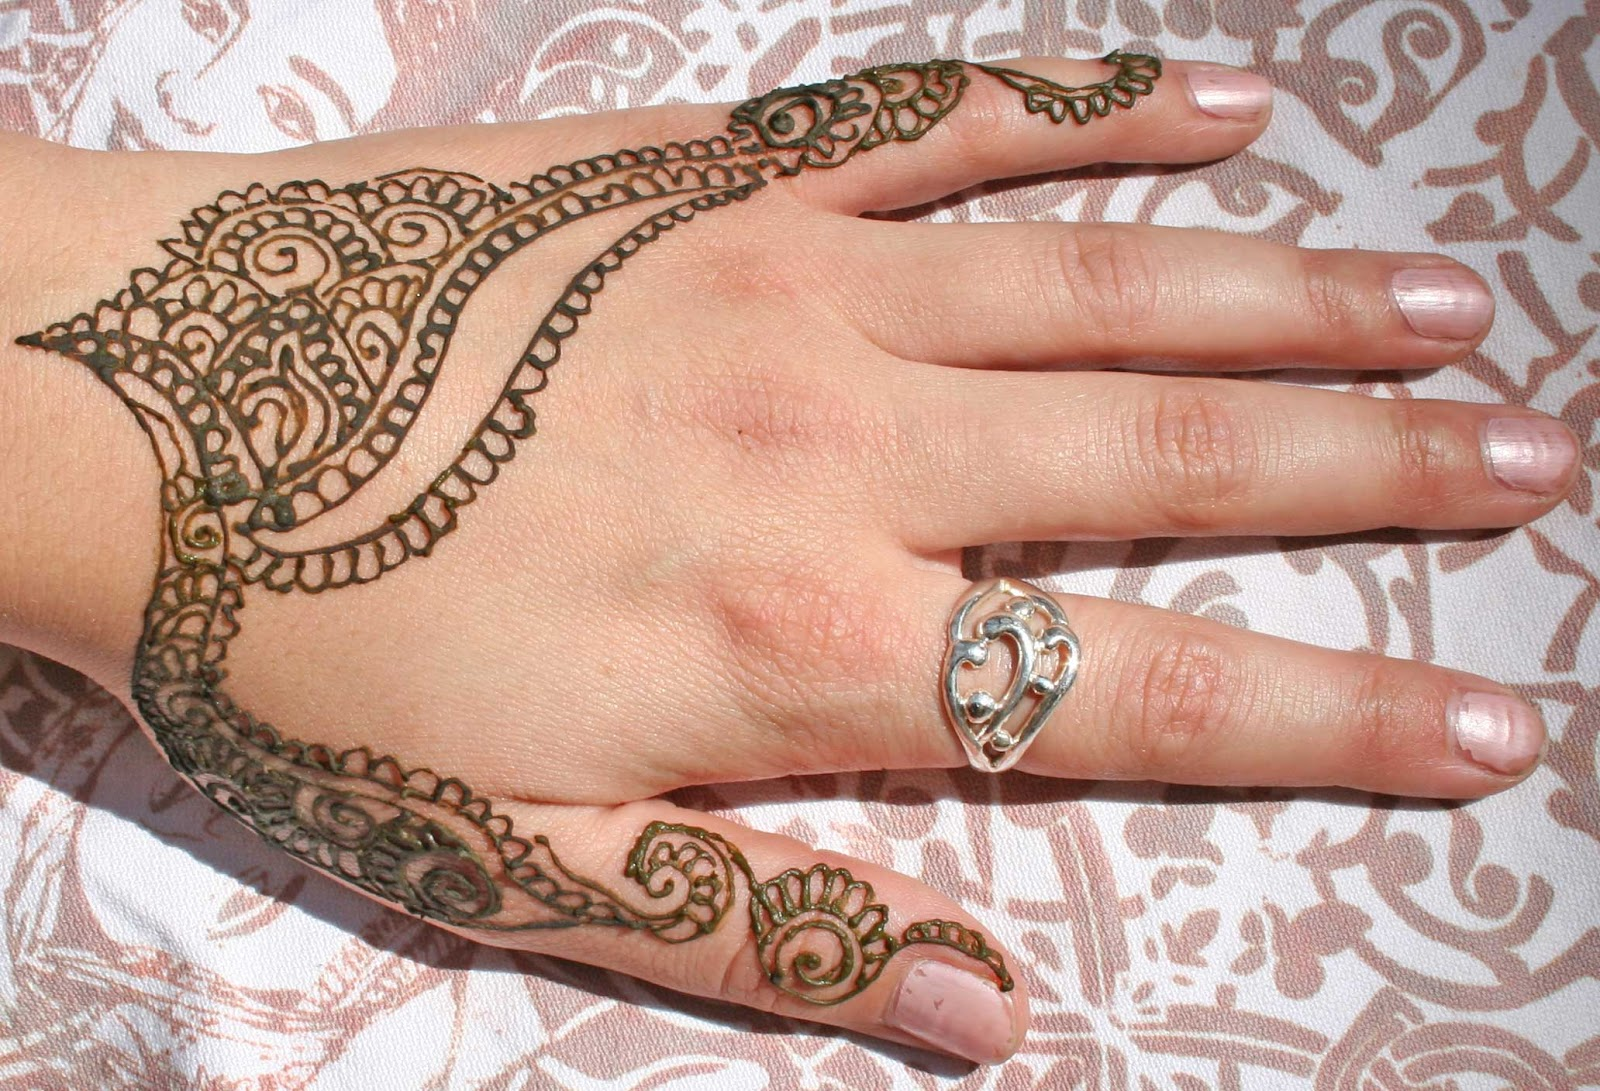 Temporary Moon Tattoo Designs On Fingers photo - 3